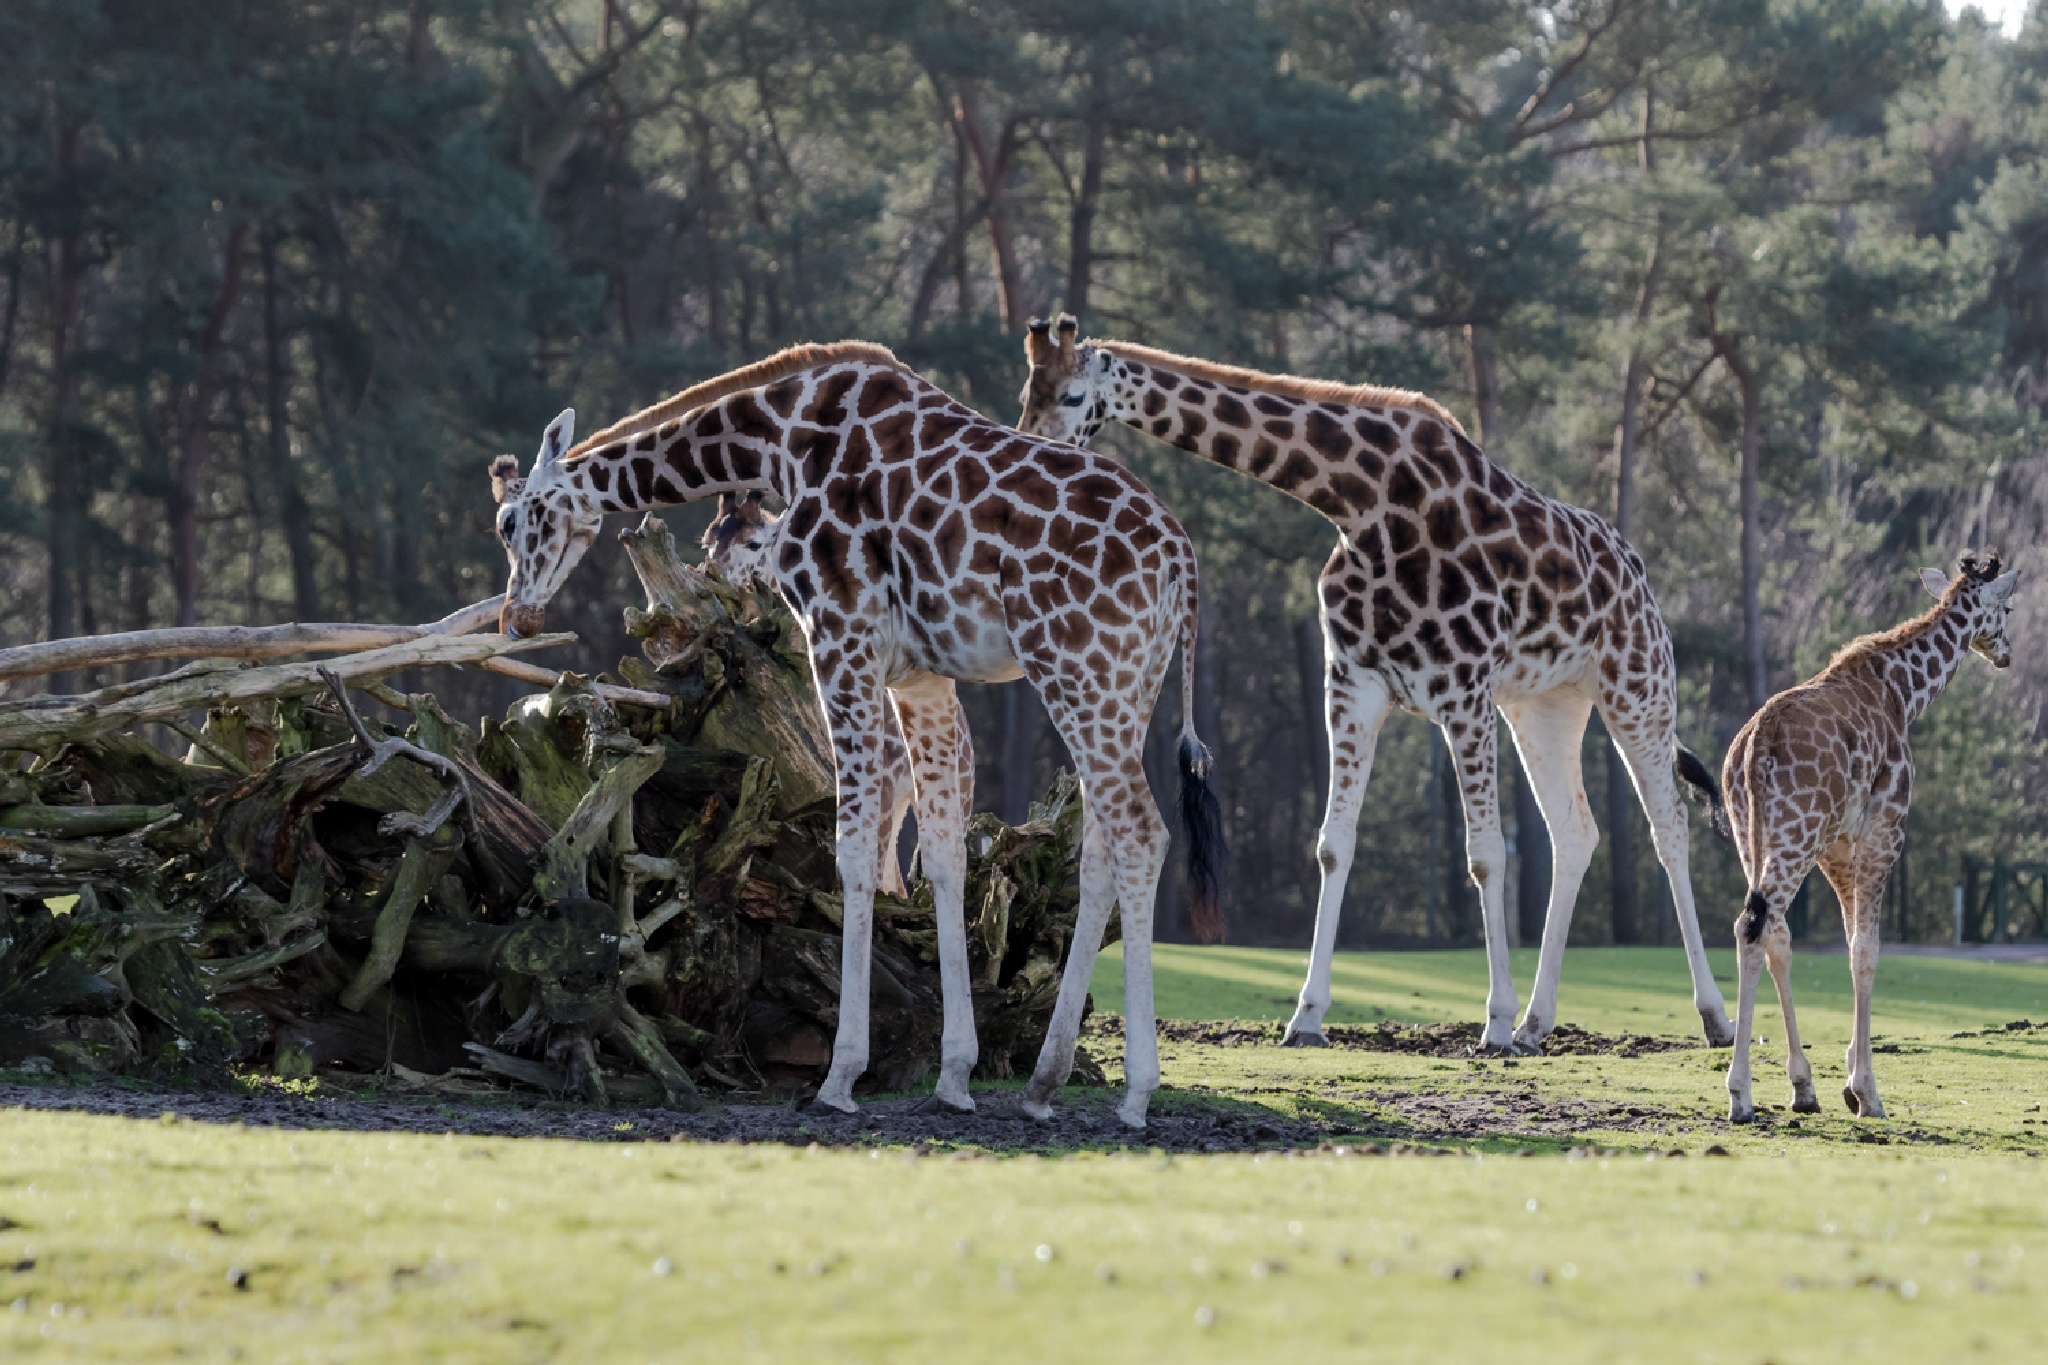 giraffes by Ronny Andries